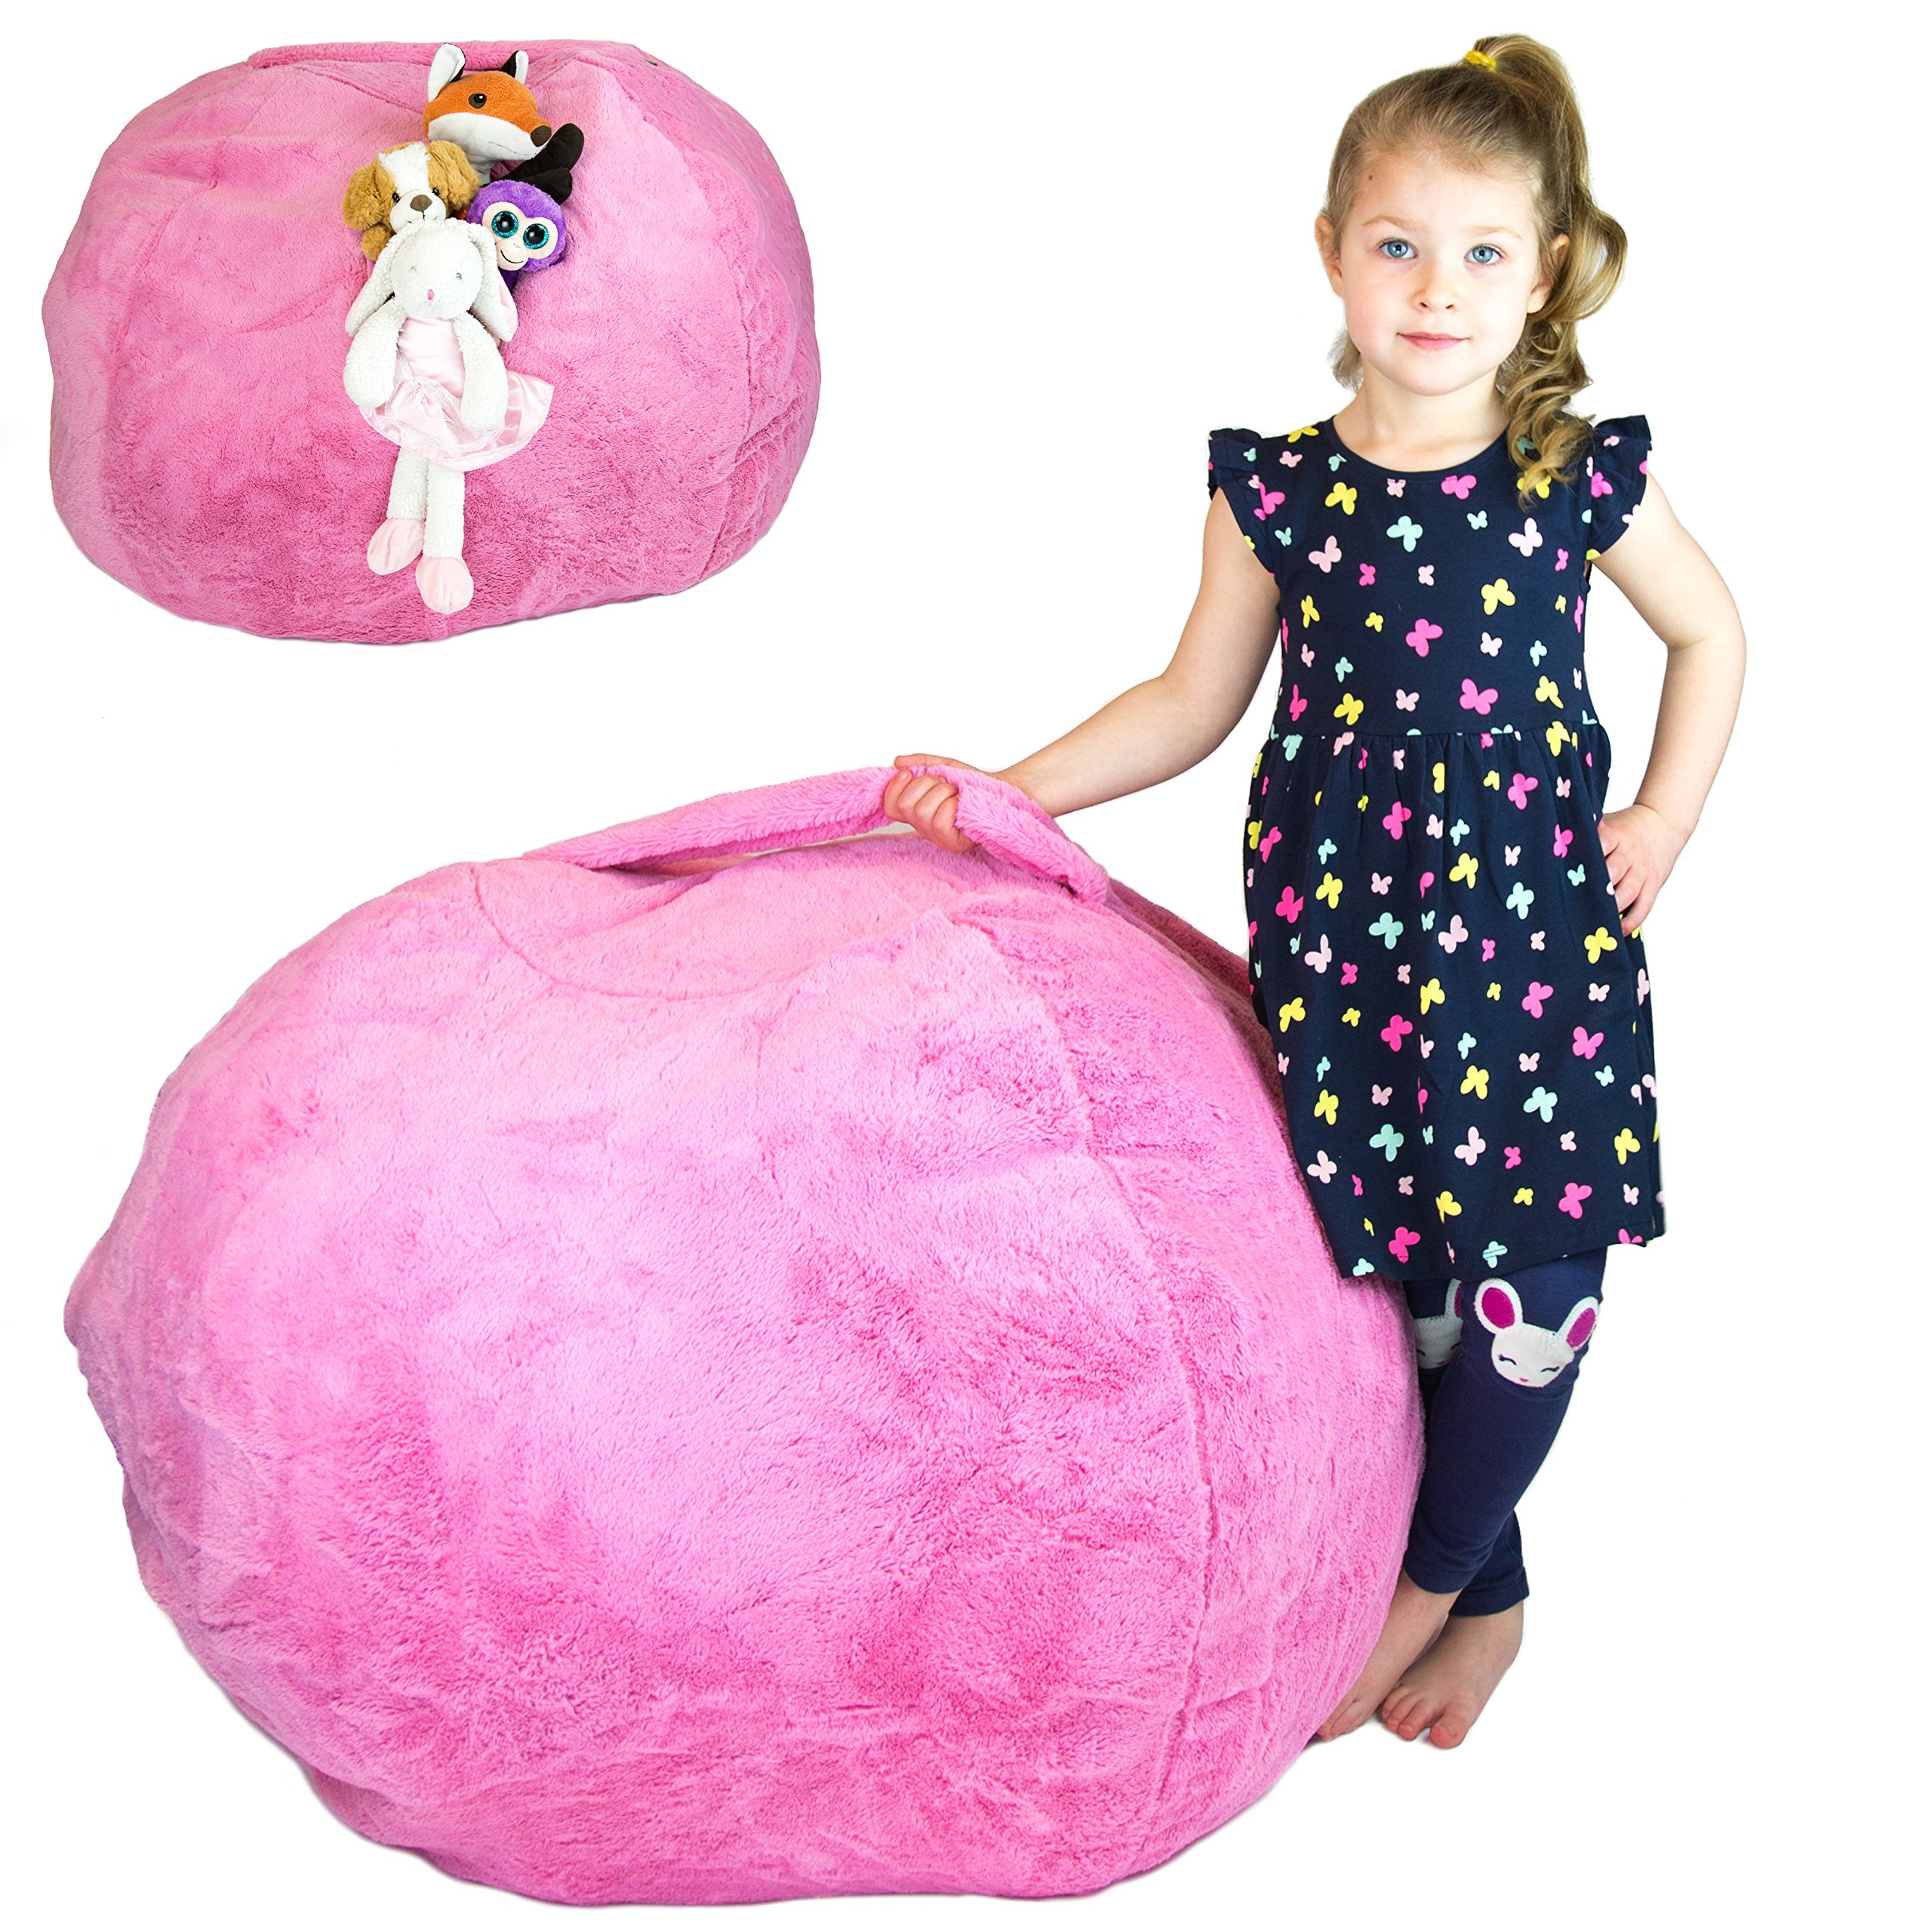 Taha Creations Stuffed Animal Storage Bean Bag Chair Faux Fur Soft Plush Fabric Large 38'' (Pink)